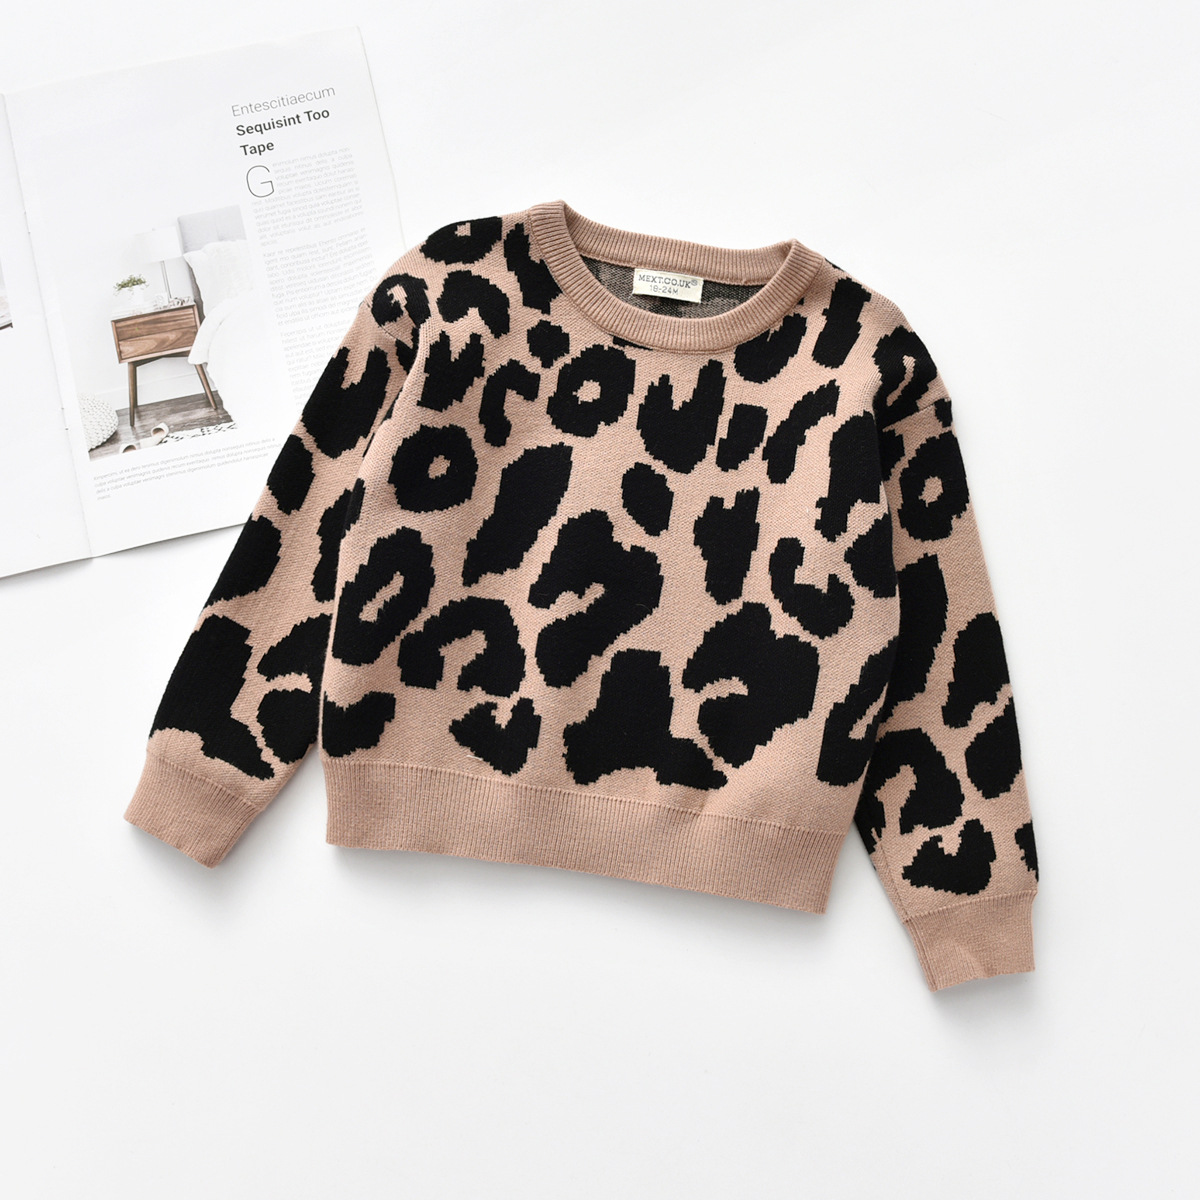 Image 4 - Kids Baby Boys Sweaters Leopard Knitted Pullover Casual Long Sleeve Childrens Tops Toddler Boy Clothes Baby Girl ClothesSweaters   -